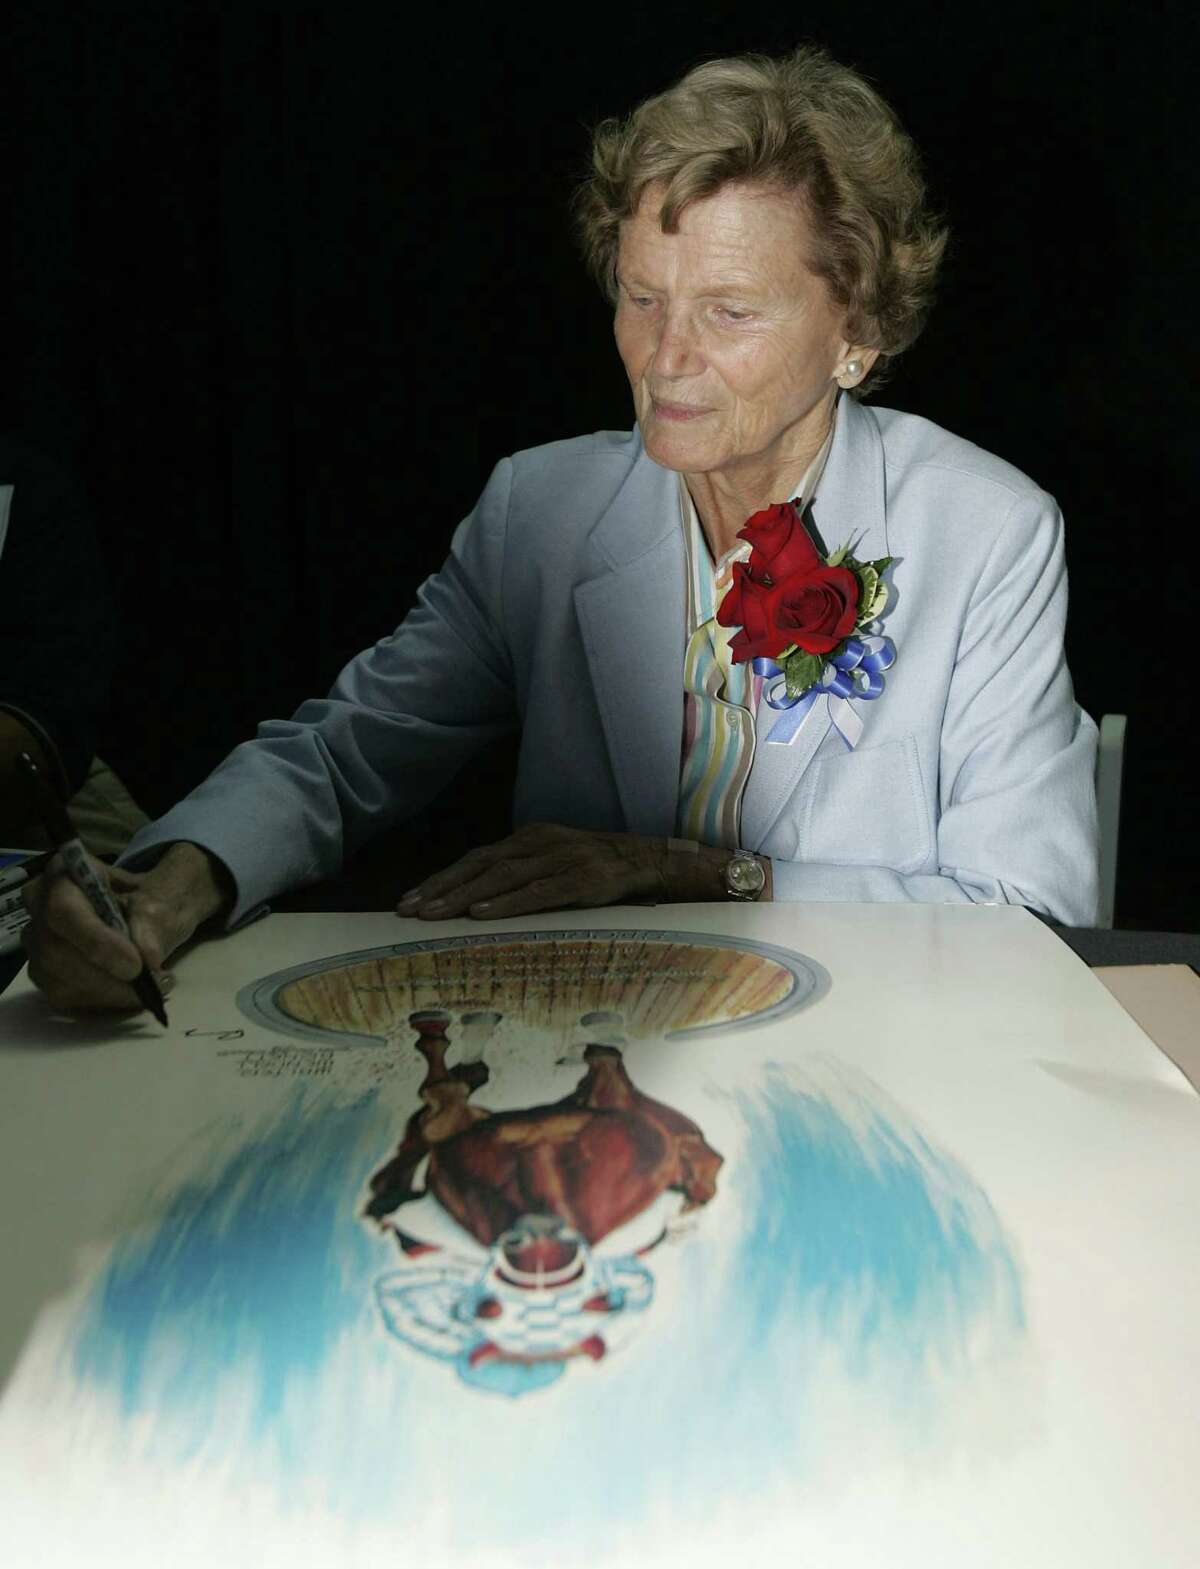 FILE - In this July 17, 2004, file photo, Secretariat owner Penny Chenery, signs some autographs as The Kentucky Horse Park unveils a statue of the 1973 Triple Crown winner Secretariat, during